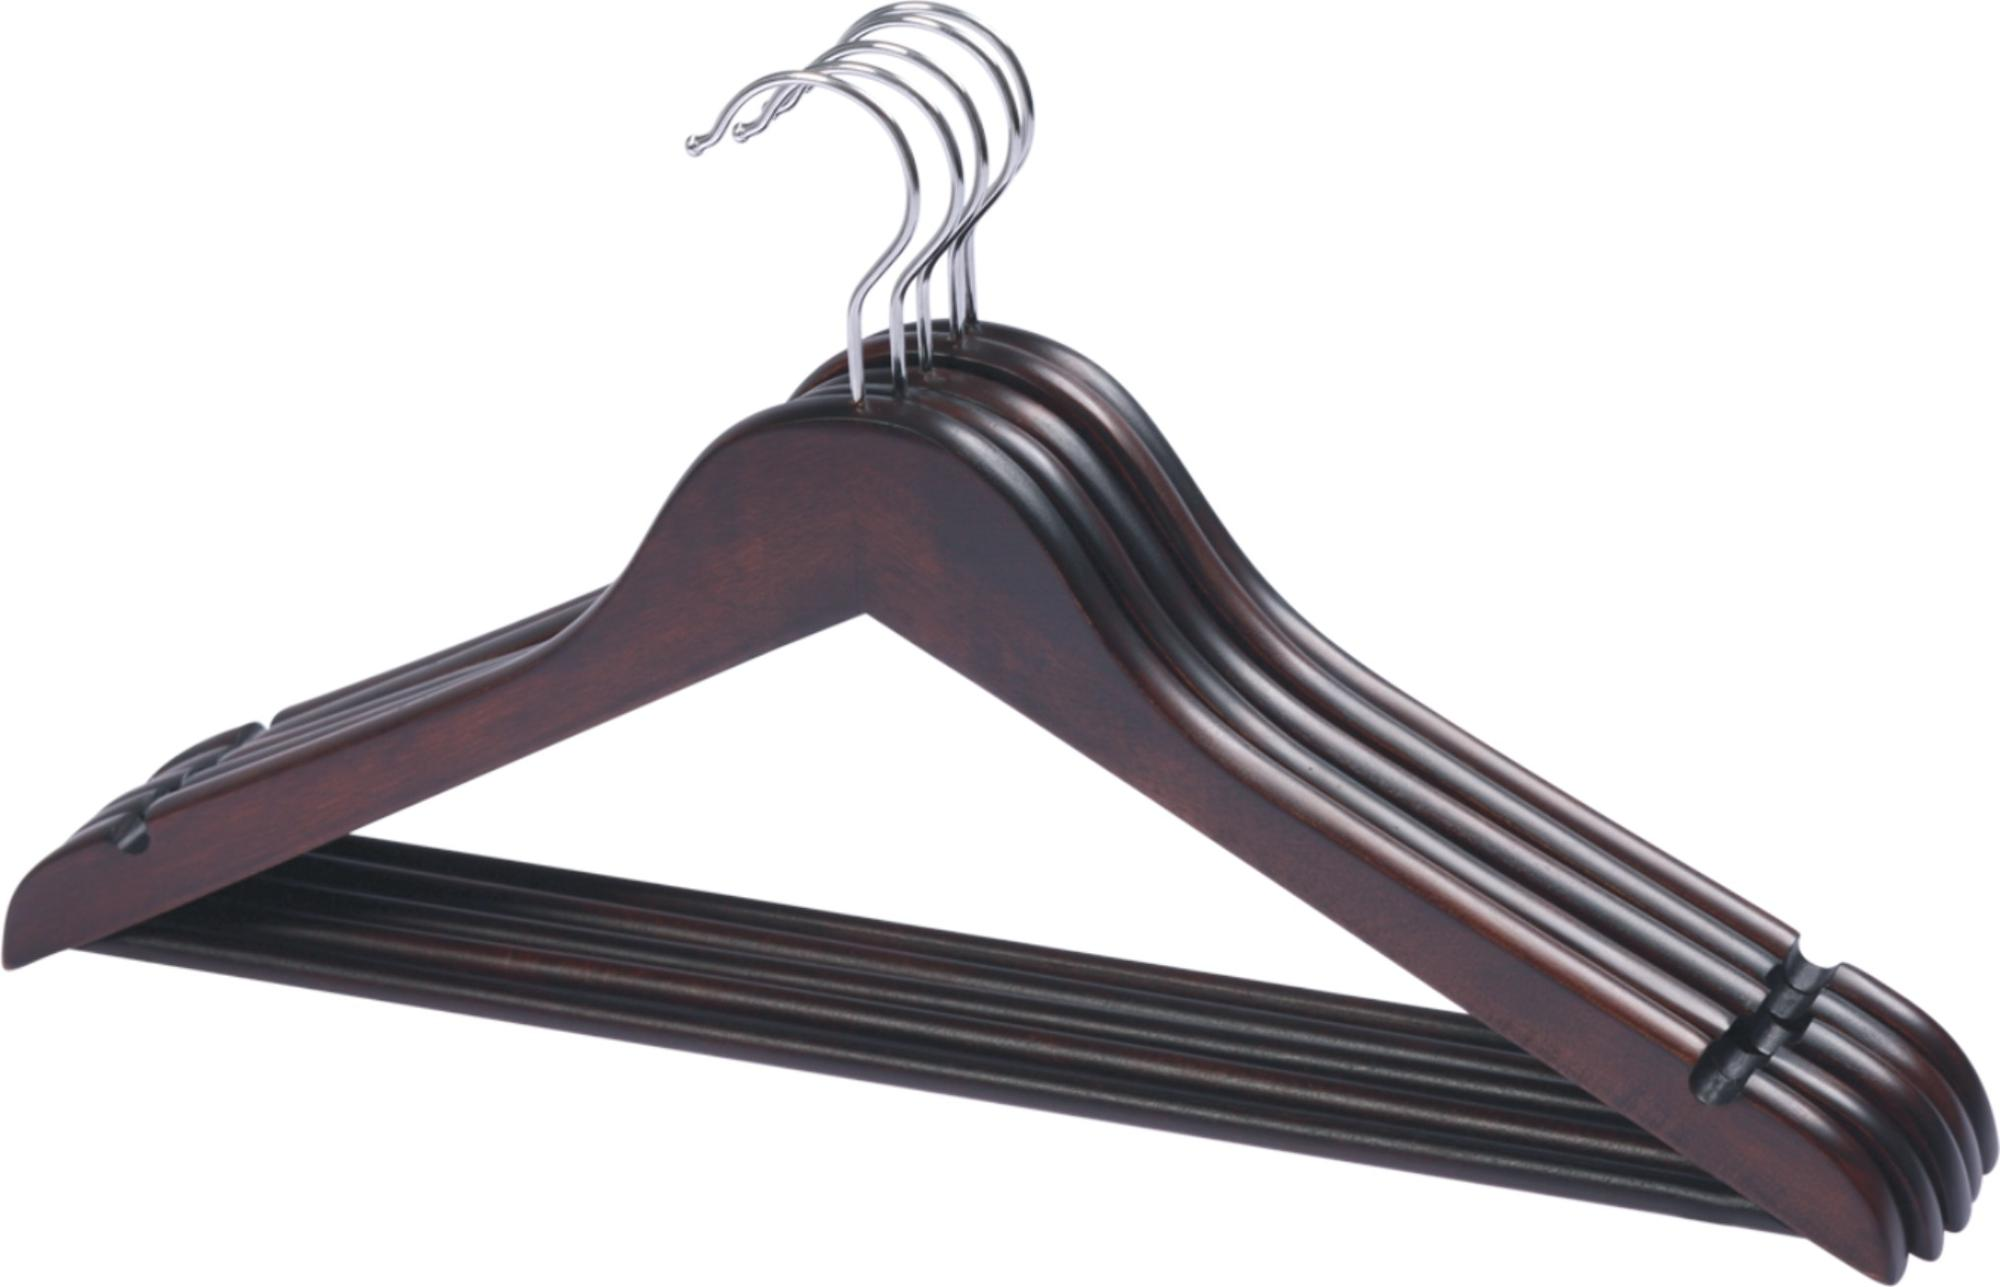 Mahogany color shirt wooden hanger with round bar